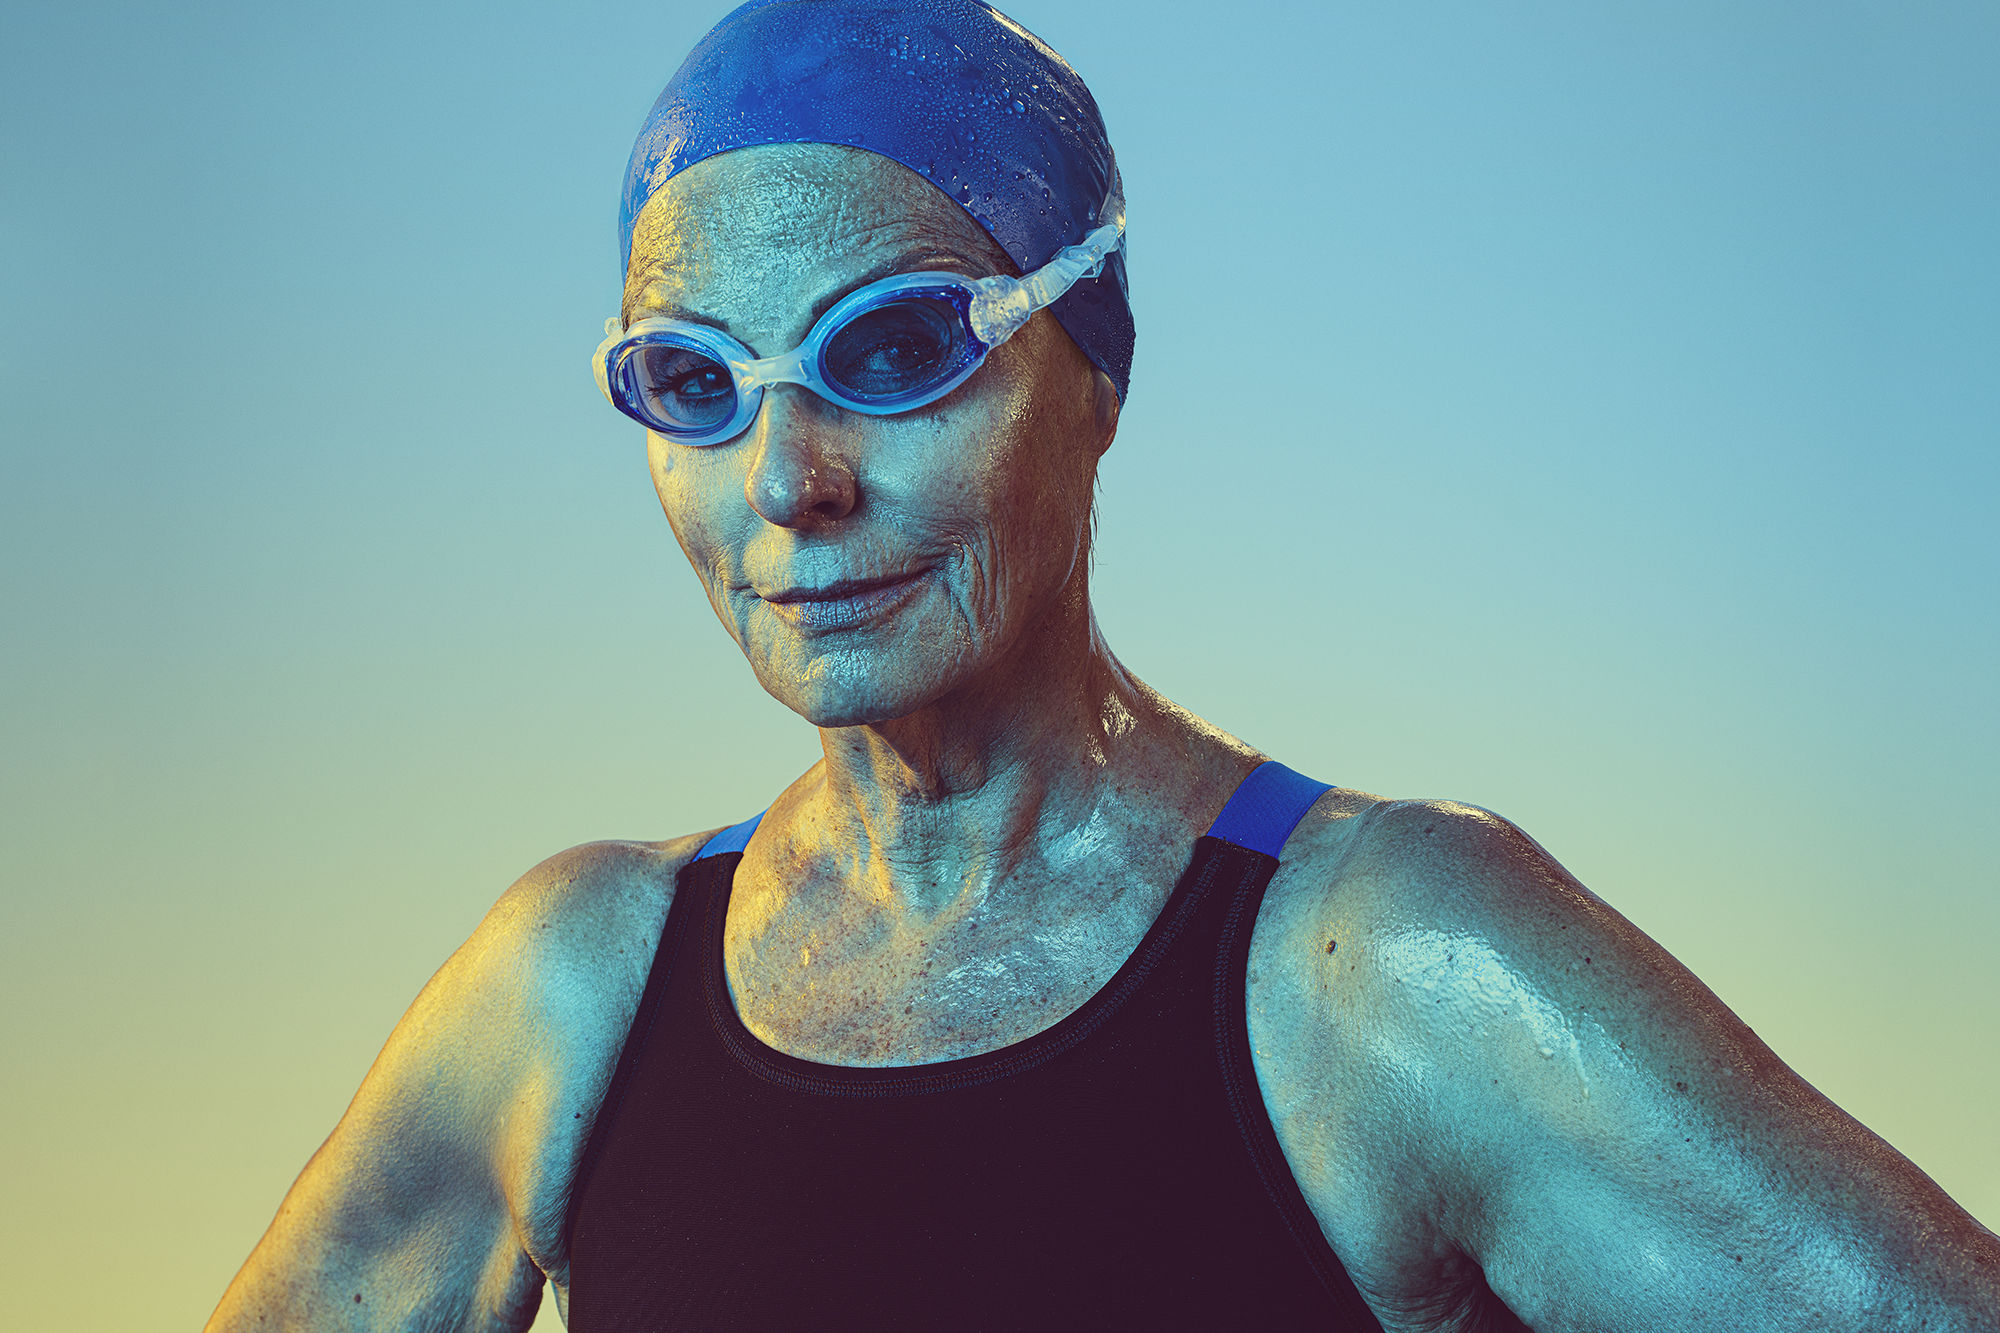 Meet DeEtte Sauer, the 77-Year-Old Houston Swimming Champ